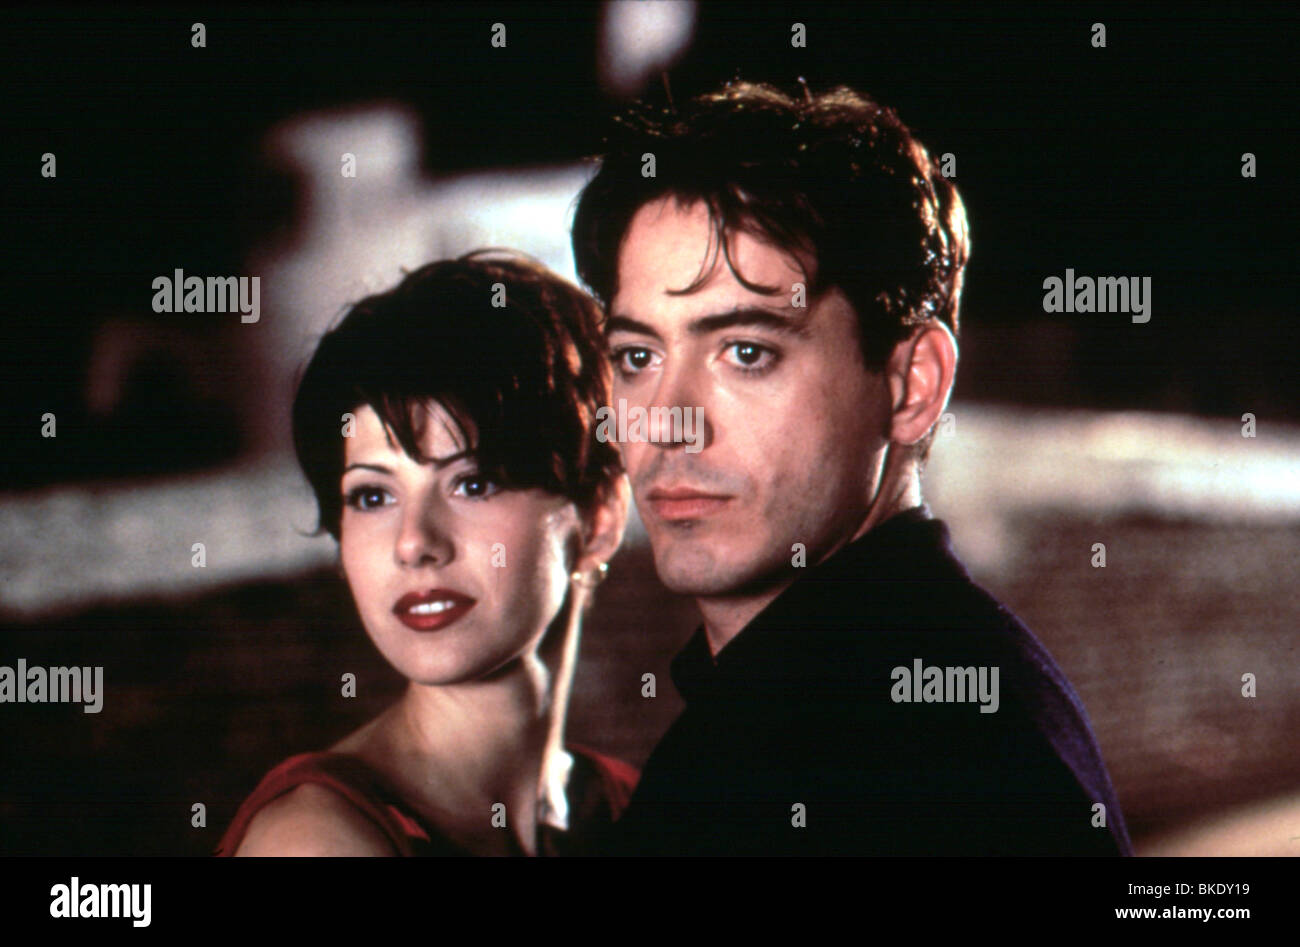 ONLY YOU (1994) MARISA TOMEI, ROBERT DOWNEY JR ONLY 026 - Stock Image